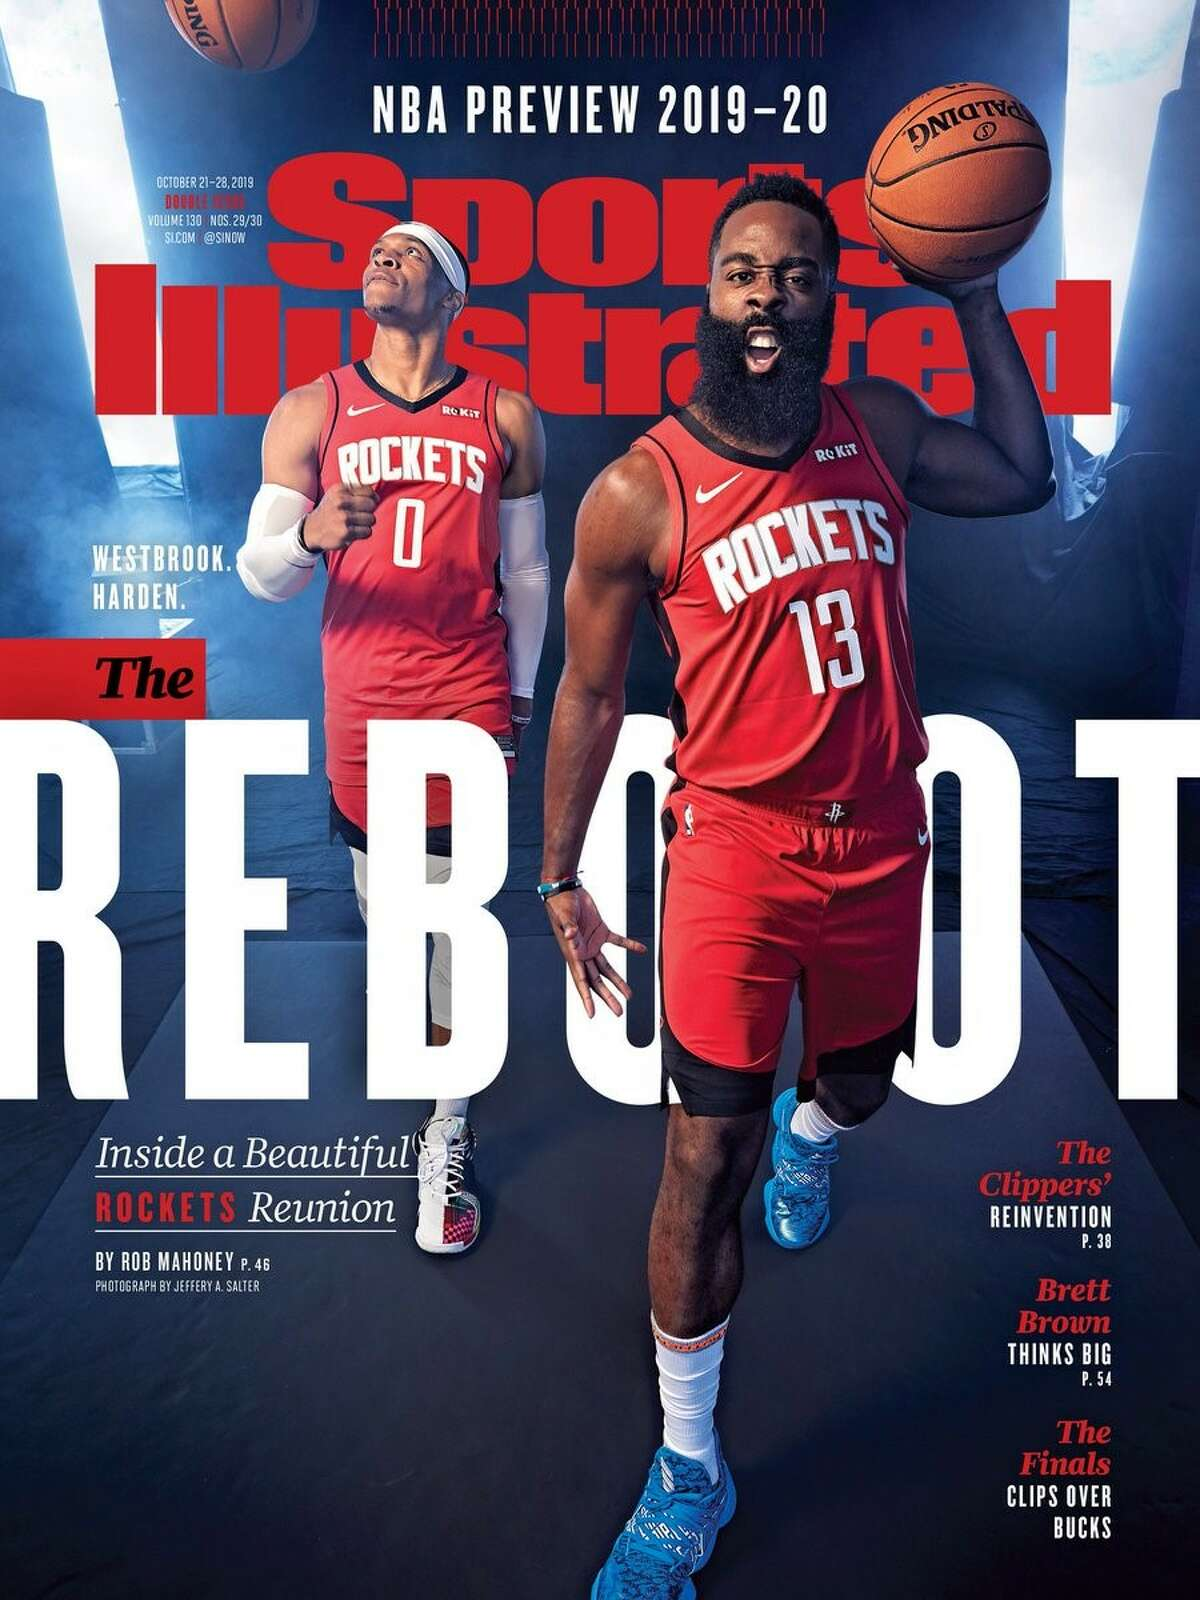 PHOTOS: All the times a Houston team has been on the cover of Sports Illustrated The Houston Rockets' Russell Westbrook and James Harden on the cover of teh Oct. 21-28, 2019 Sports Illustrated cover. Browse through the photos above for a look at all the Houston Sports Illustrated covers over the years ...